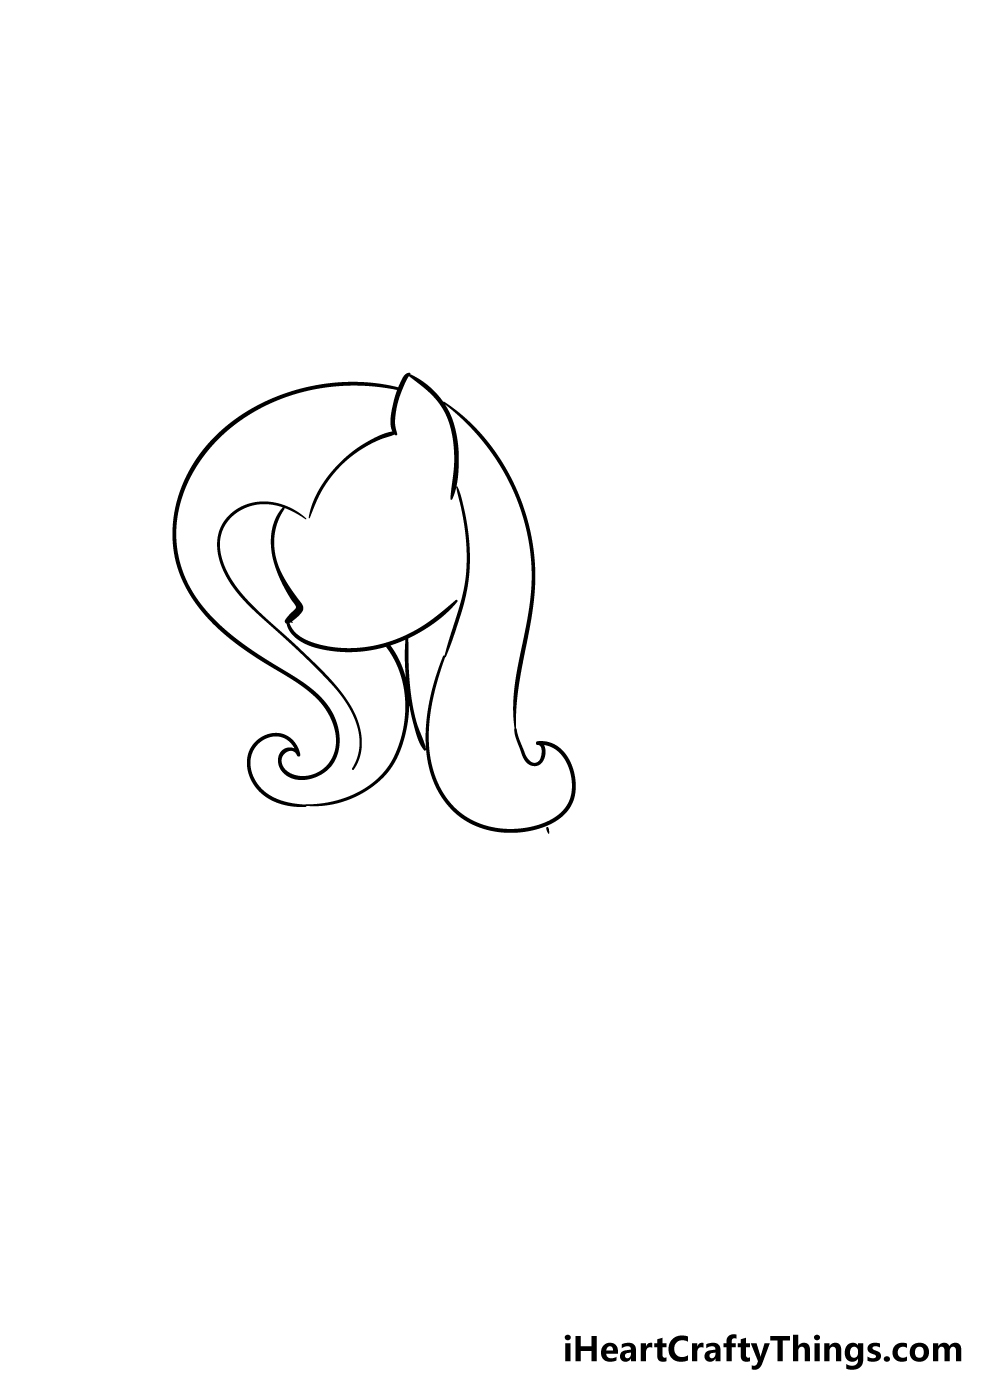 my little pony drawing step 2